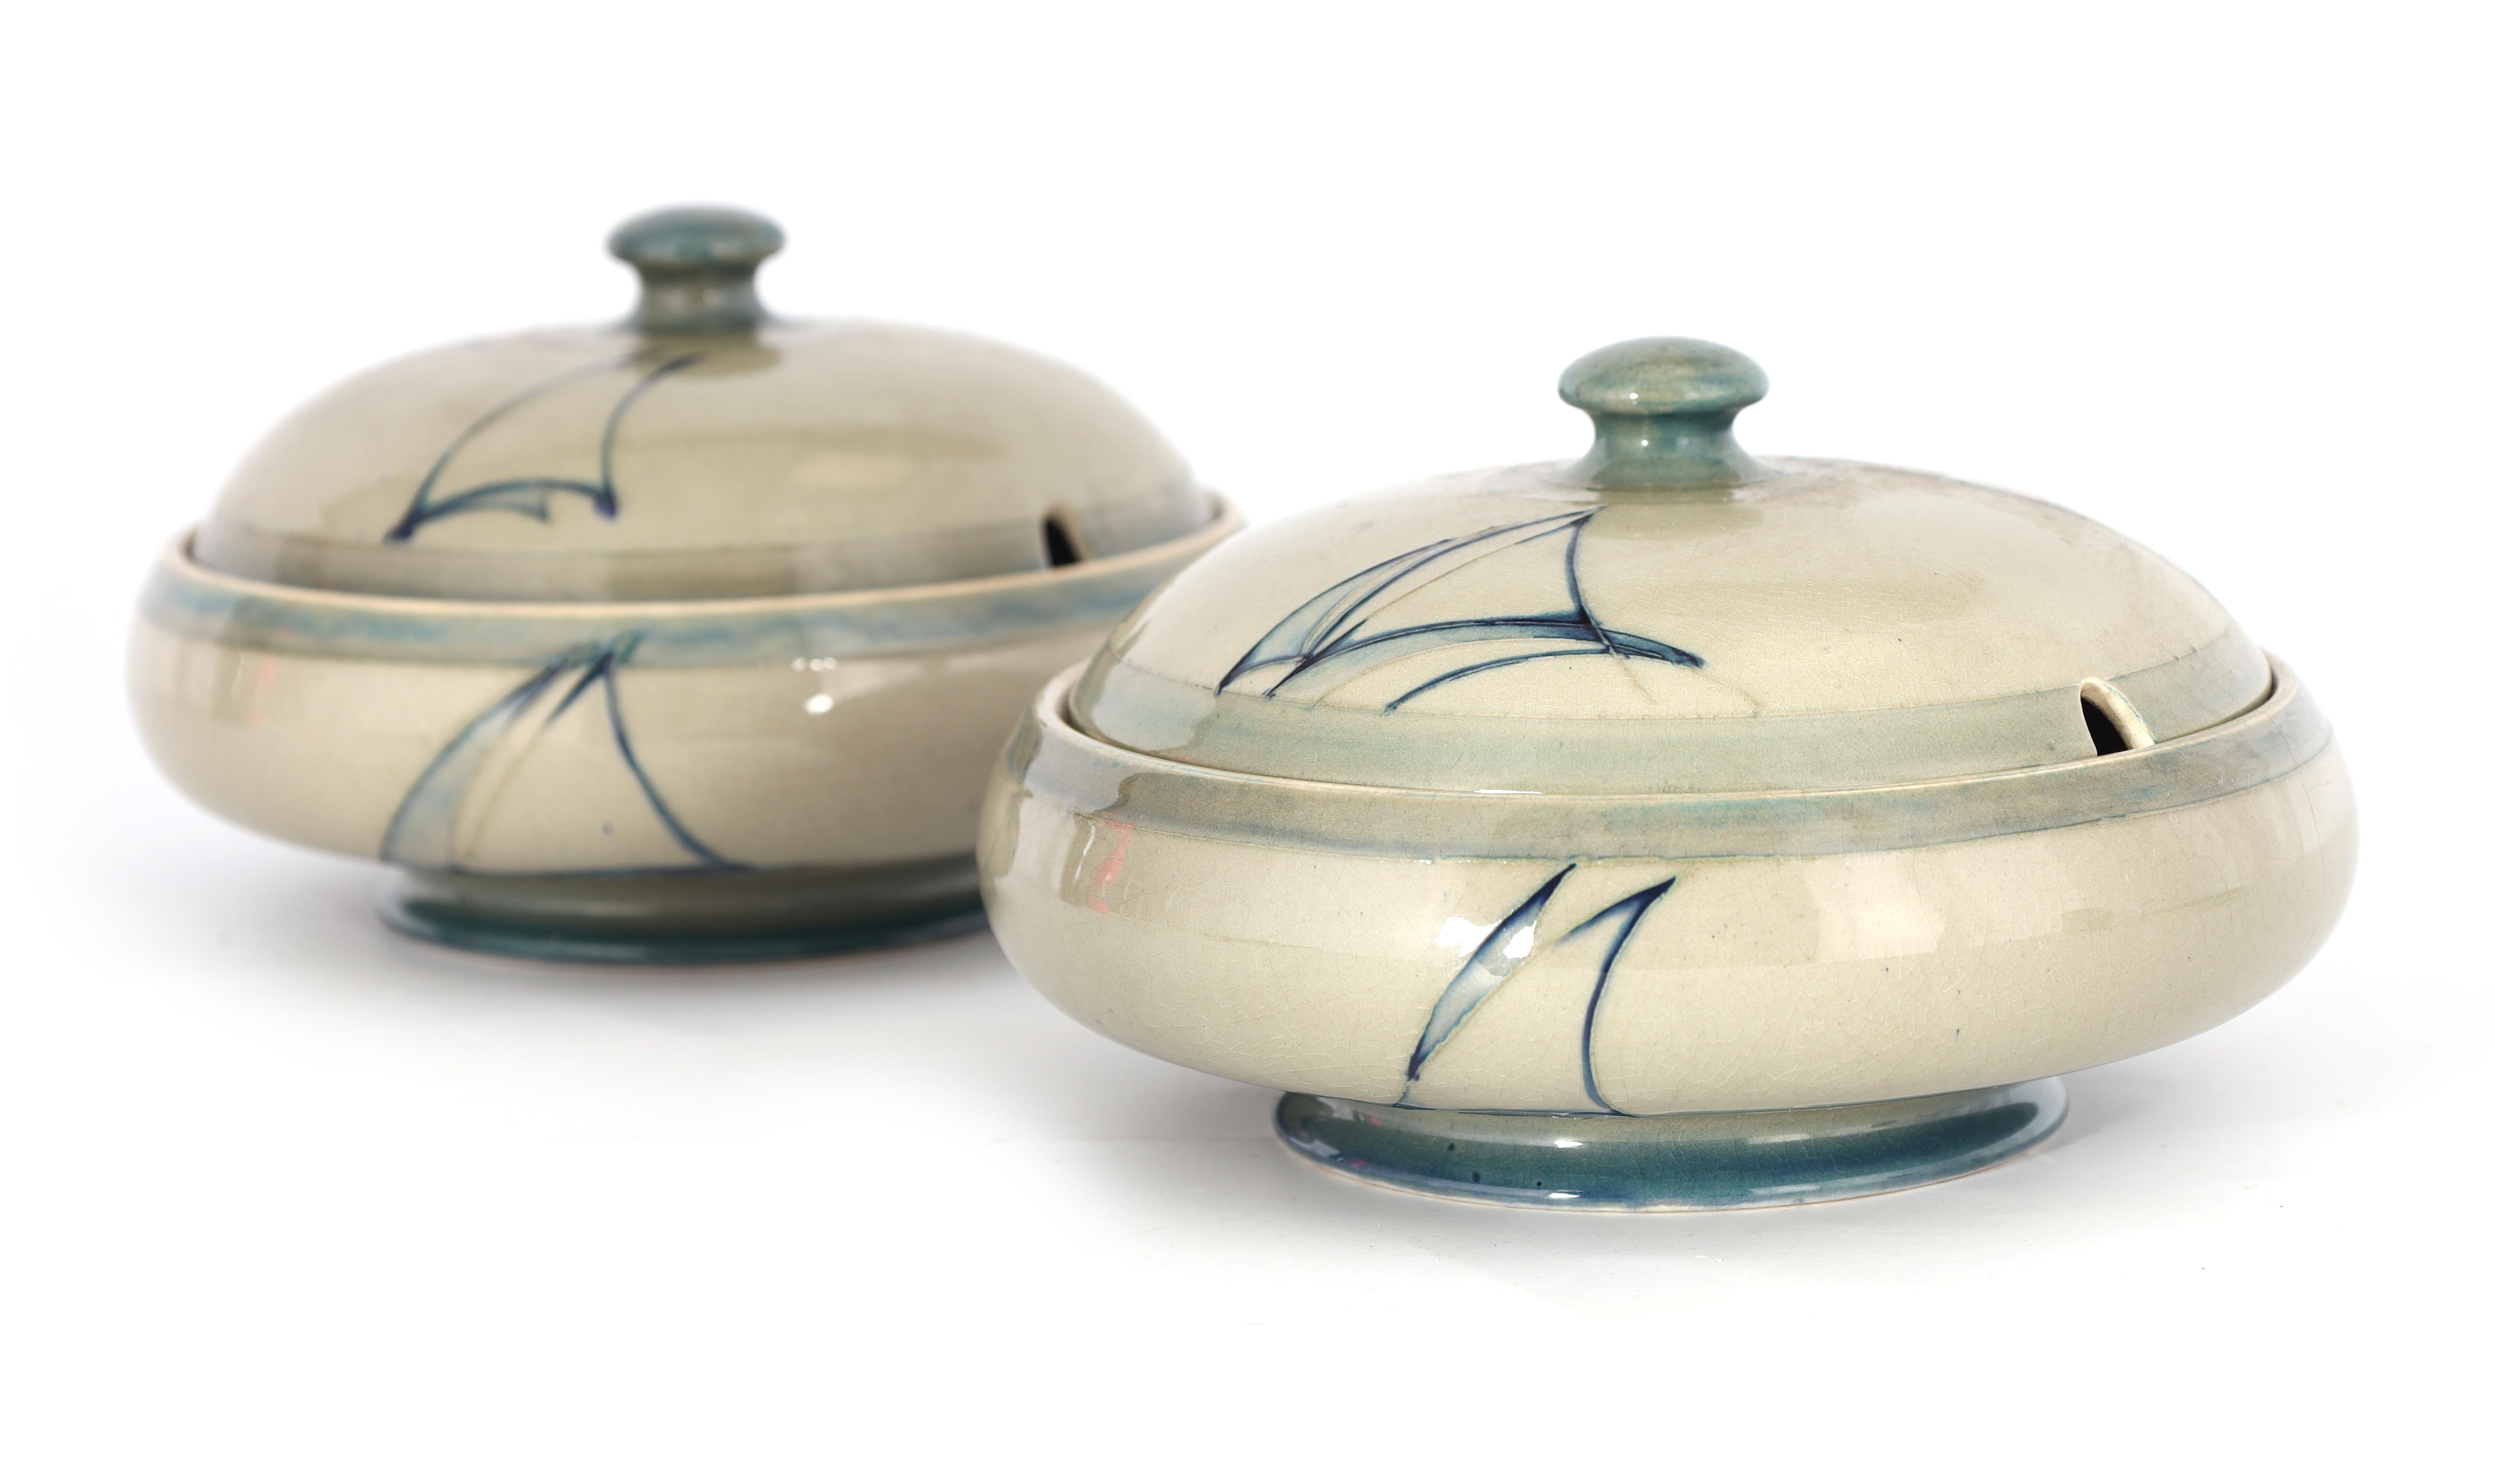 A PAIR OF MOORCROFT LIDDED TABLE TUREENS decorated in the Yacht pattern on a celadon ground, 19.